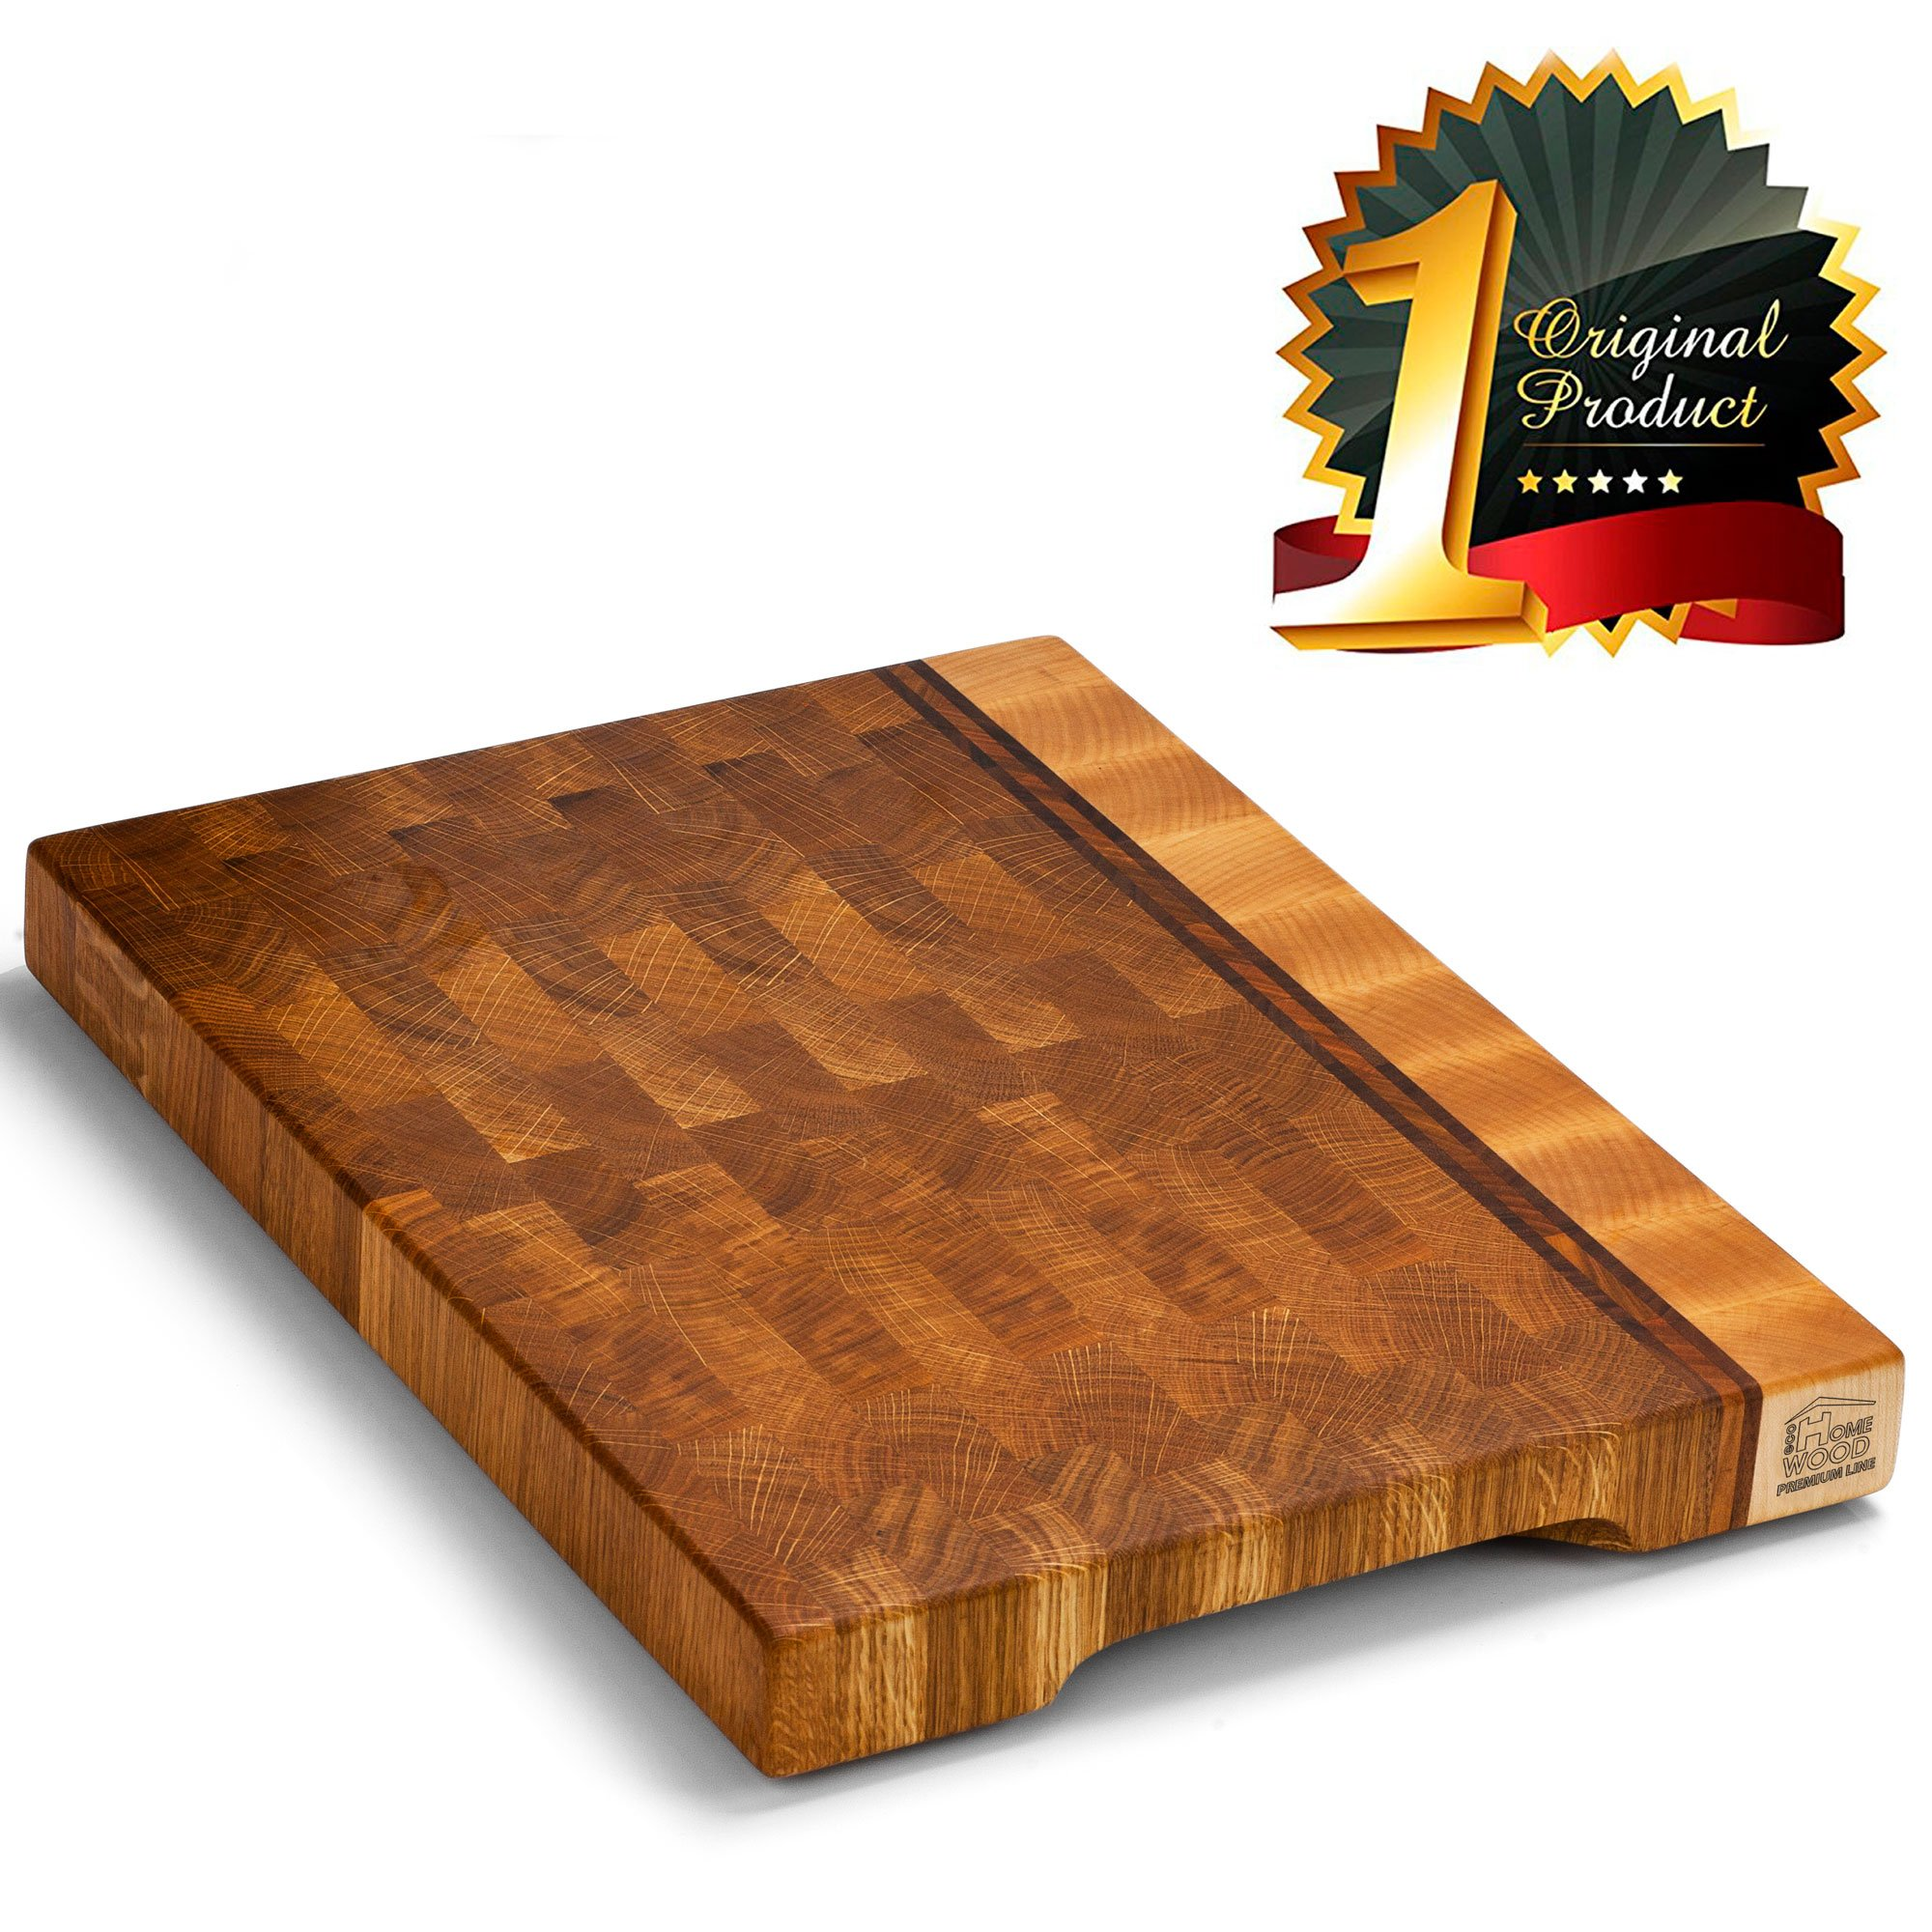 Wood cutting board - Wood Chopping block | Large cutting board 16x12 Kitchen butcher block Antibacterial Oak End grain cutting board - non slip cutting board with feet | Kitchen Wooden chopping board by Eco Home Wood